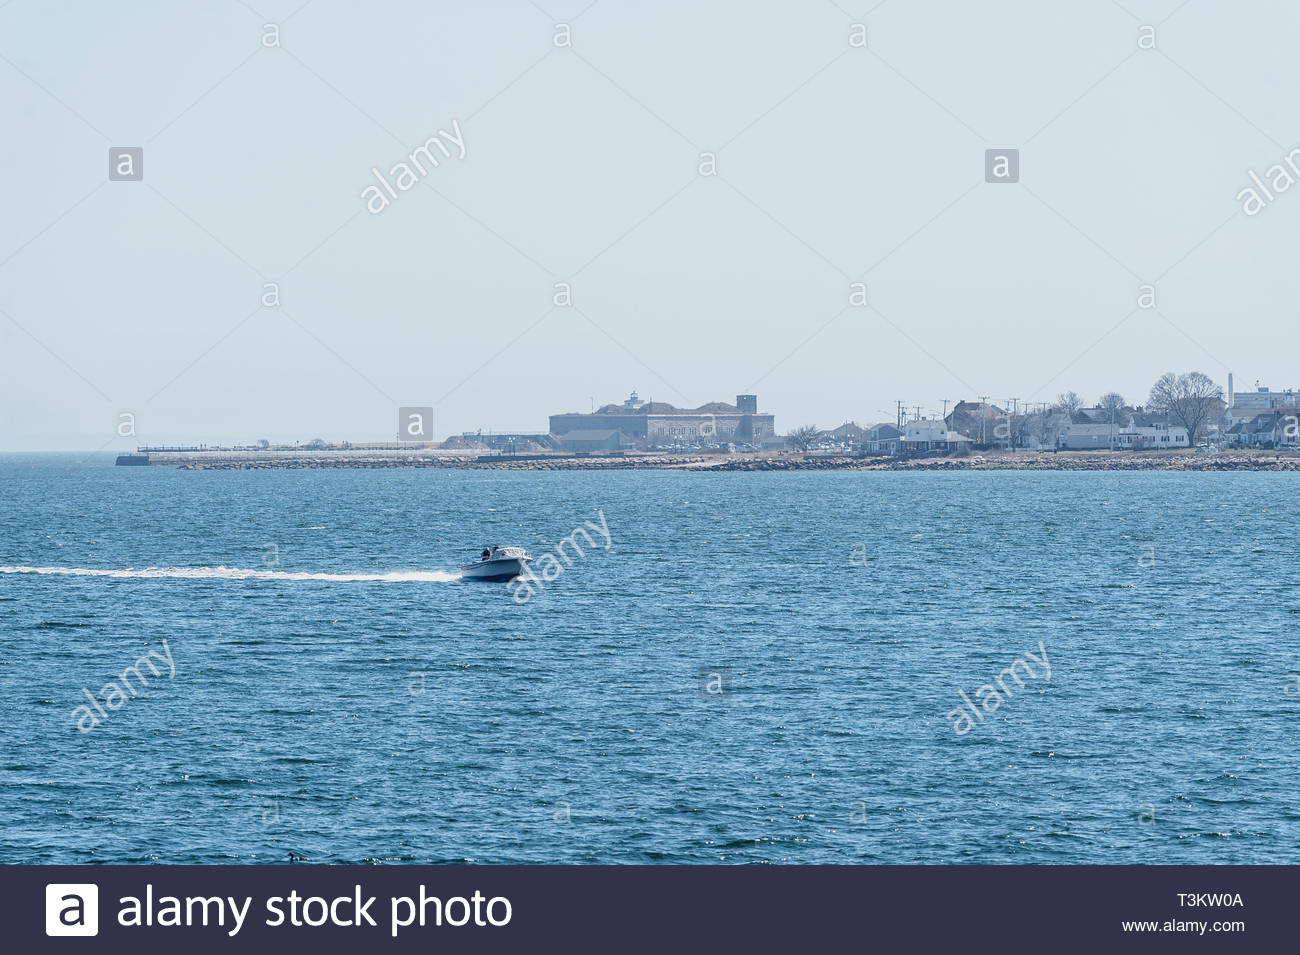 New Bedford, Massachusetts, USA - April 6, 2019: Powerboat zipping across New Bedford outer harbor on hazy afternoon with Fort Taber in background - Stock Image